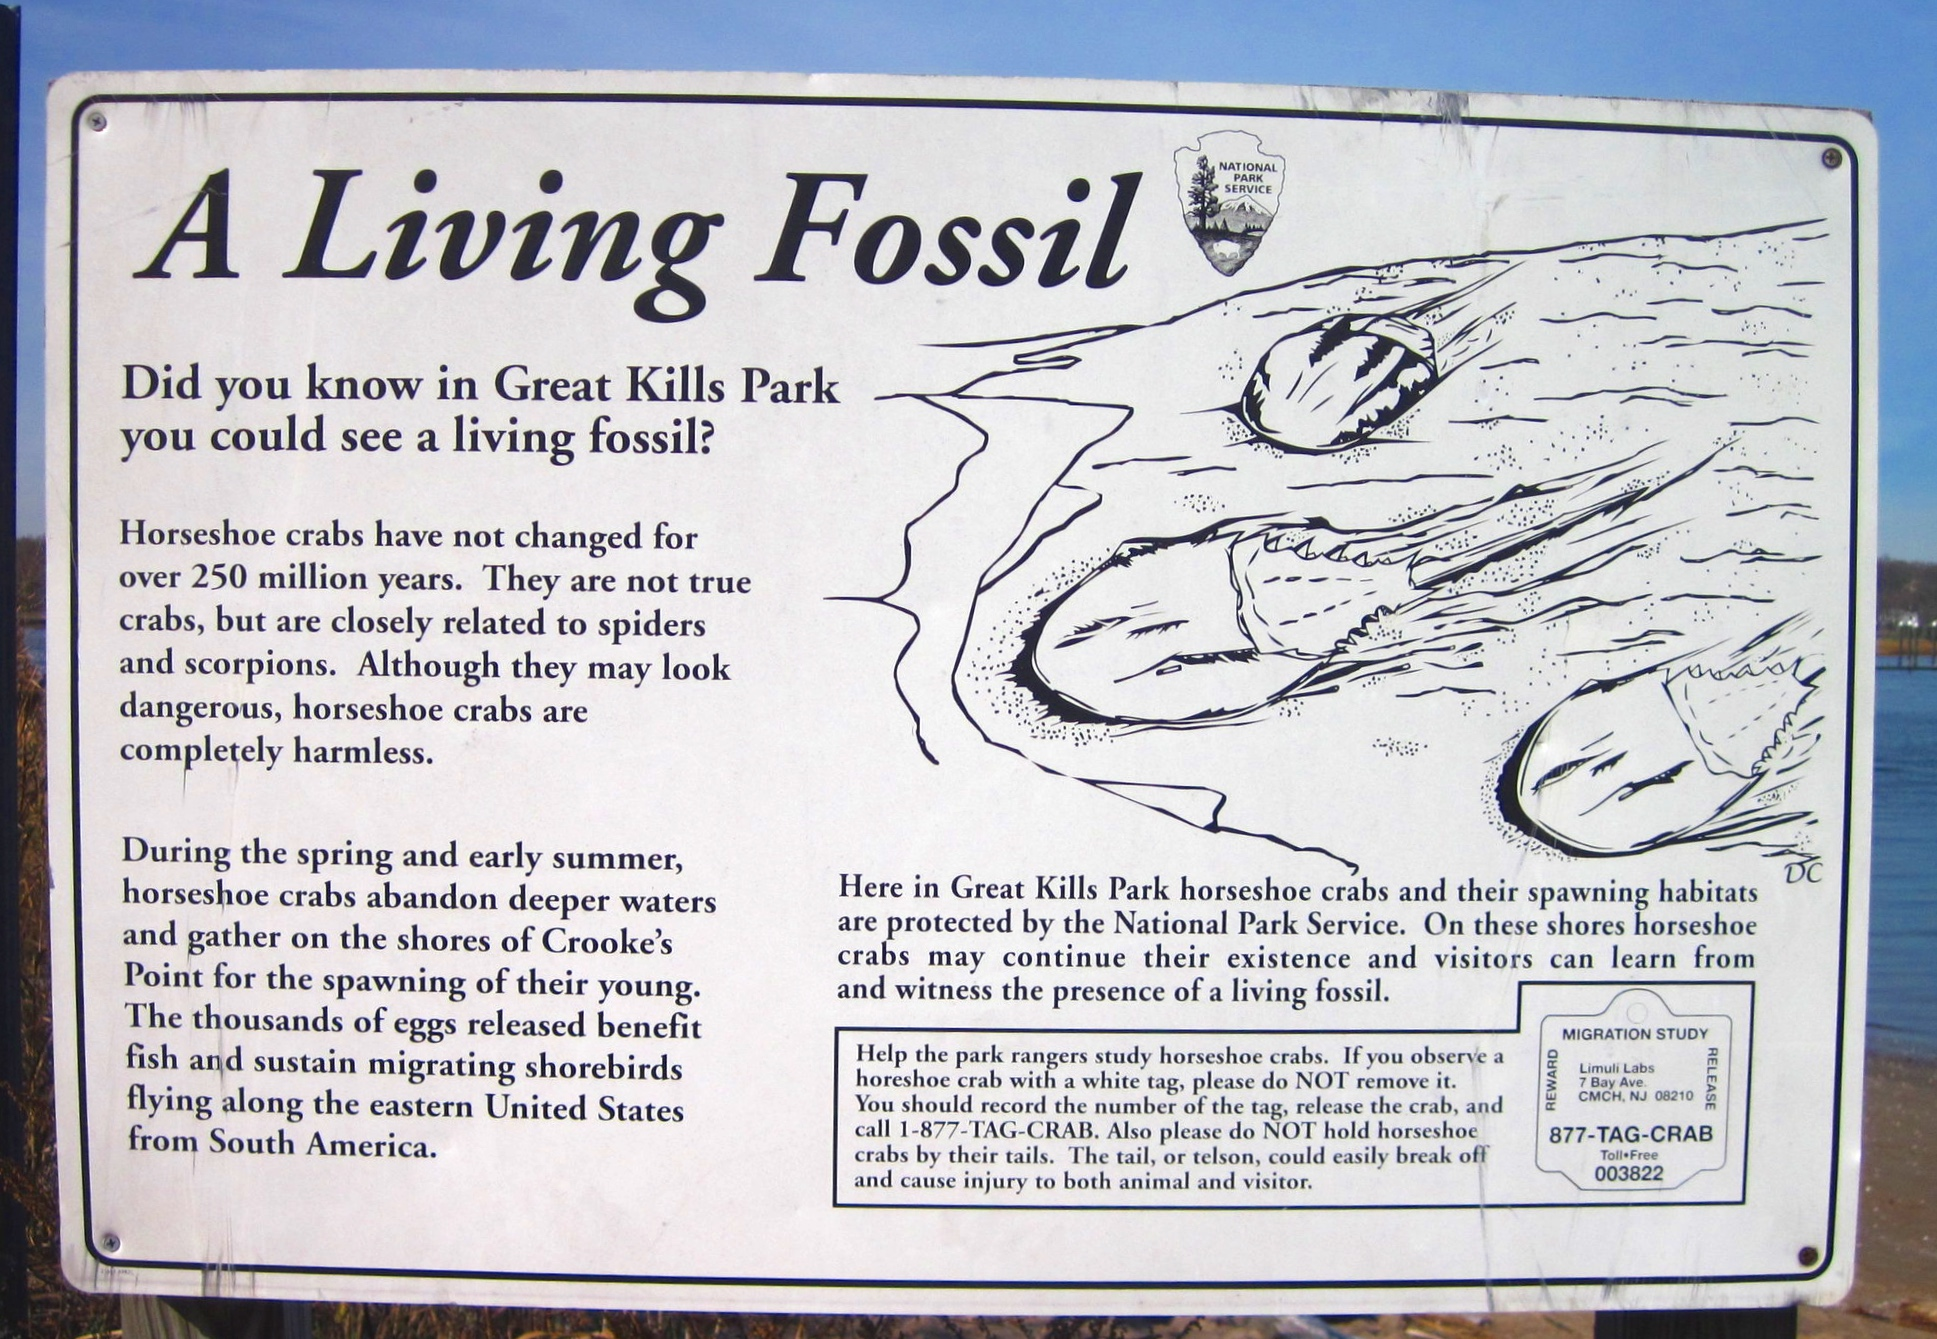 A Horseshoe Crab sign in Great Kills Park on Staten Island, New York City.